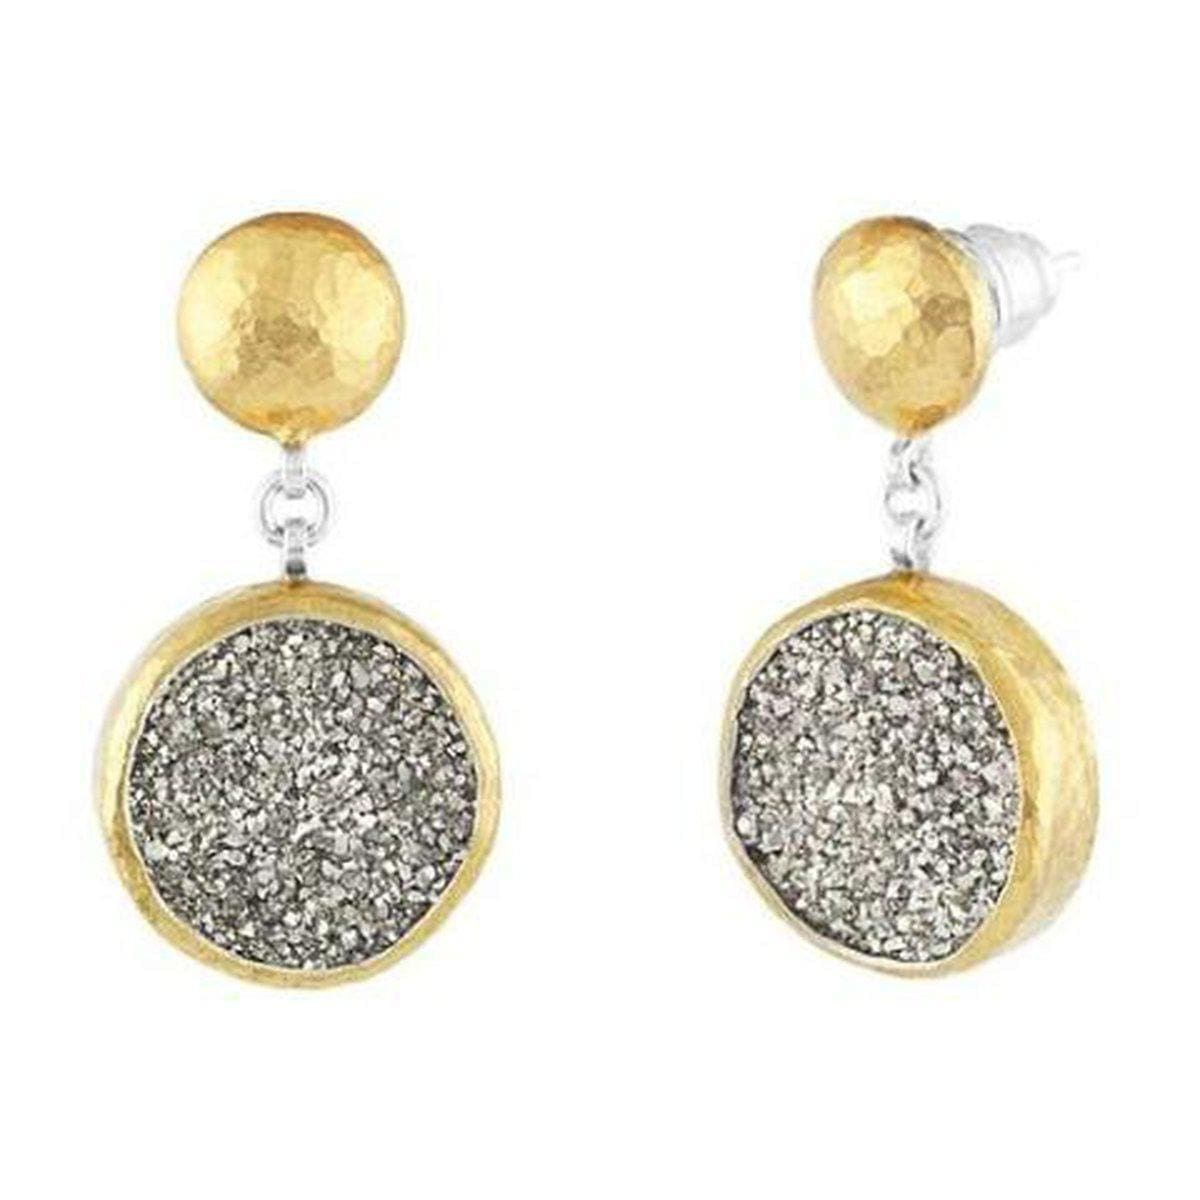 Mystere Sterling Silver Drusy Quartz Earrings - SLTE-DQS-RD15-GF-GURHAN-Renee Taylor Gallery